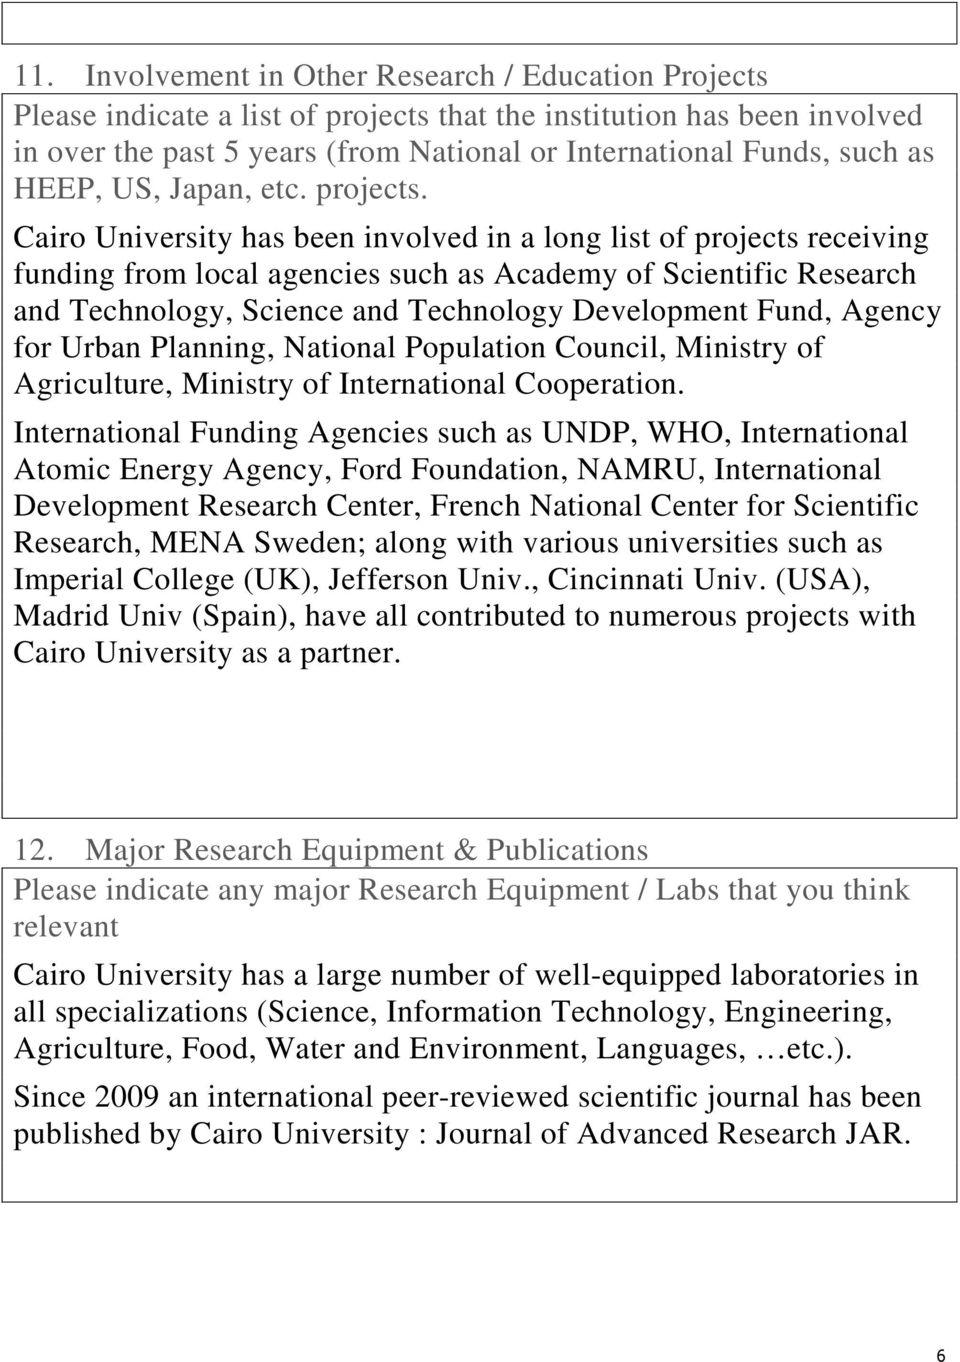 Cairo University has been involved in a long list of projects receiving funding from local agencies such as Academy of Scientific Research and Technology, Science and Technology Development Fund,